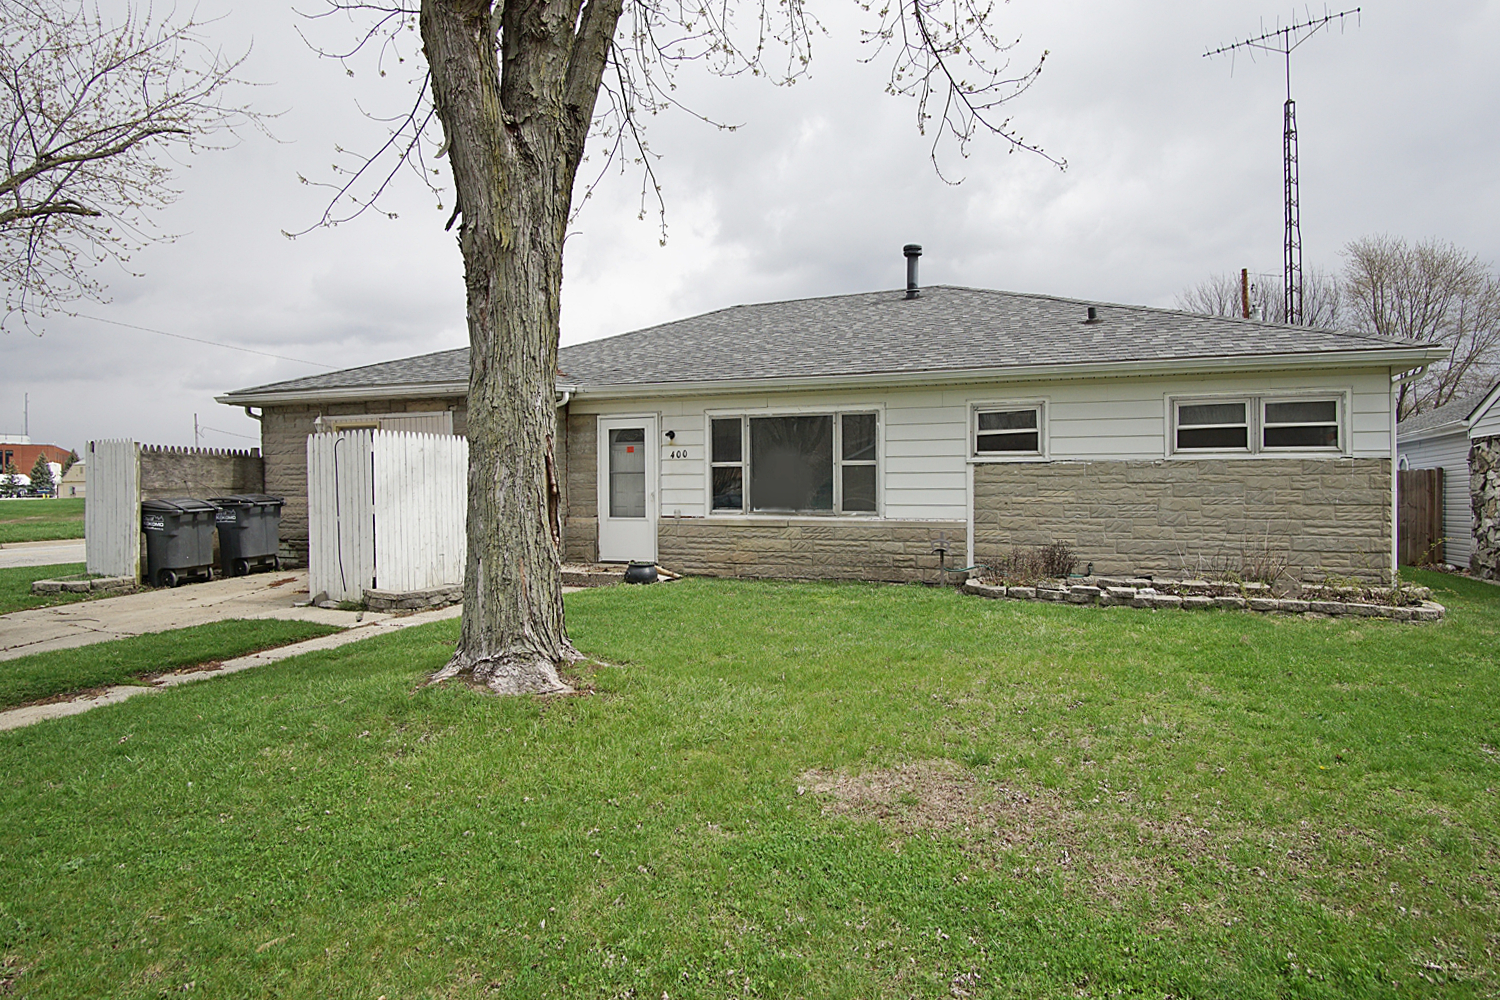 3 bedroom houses for rent in kokomo indiana 28 images